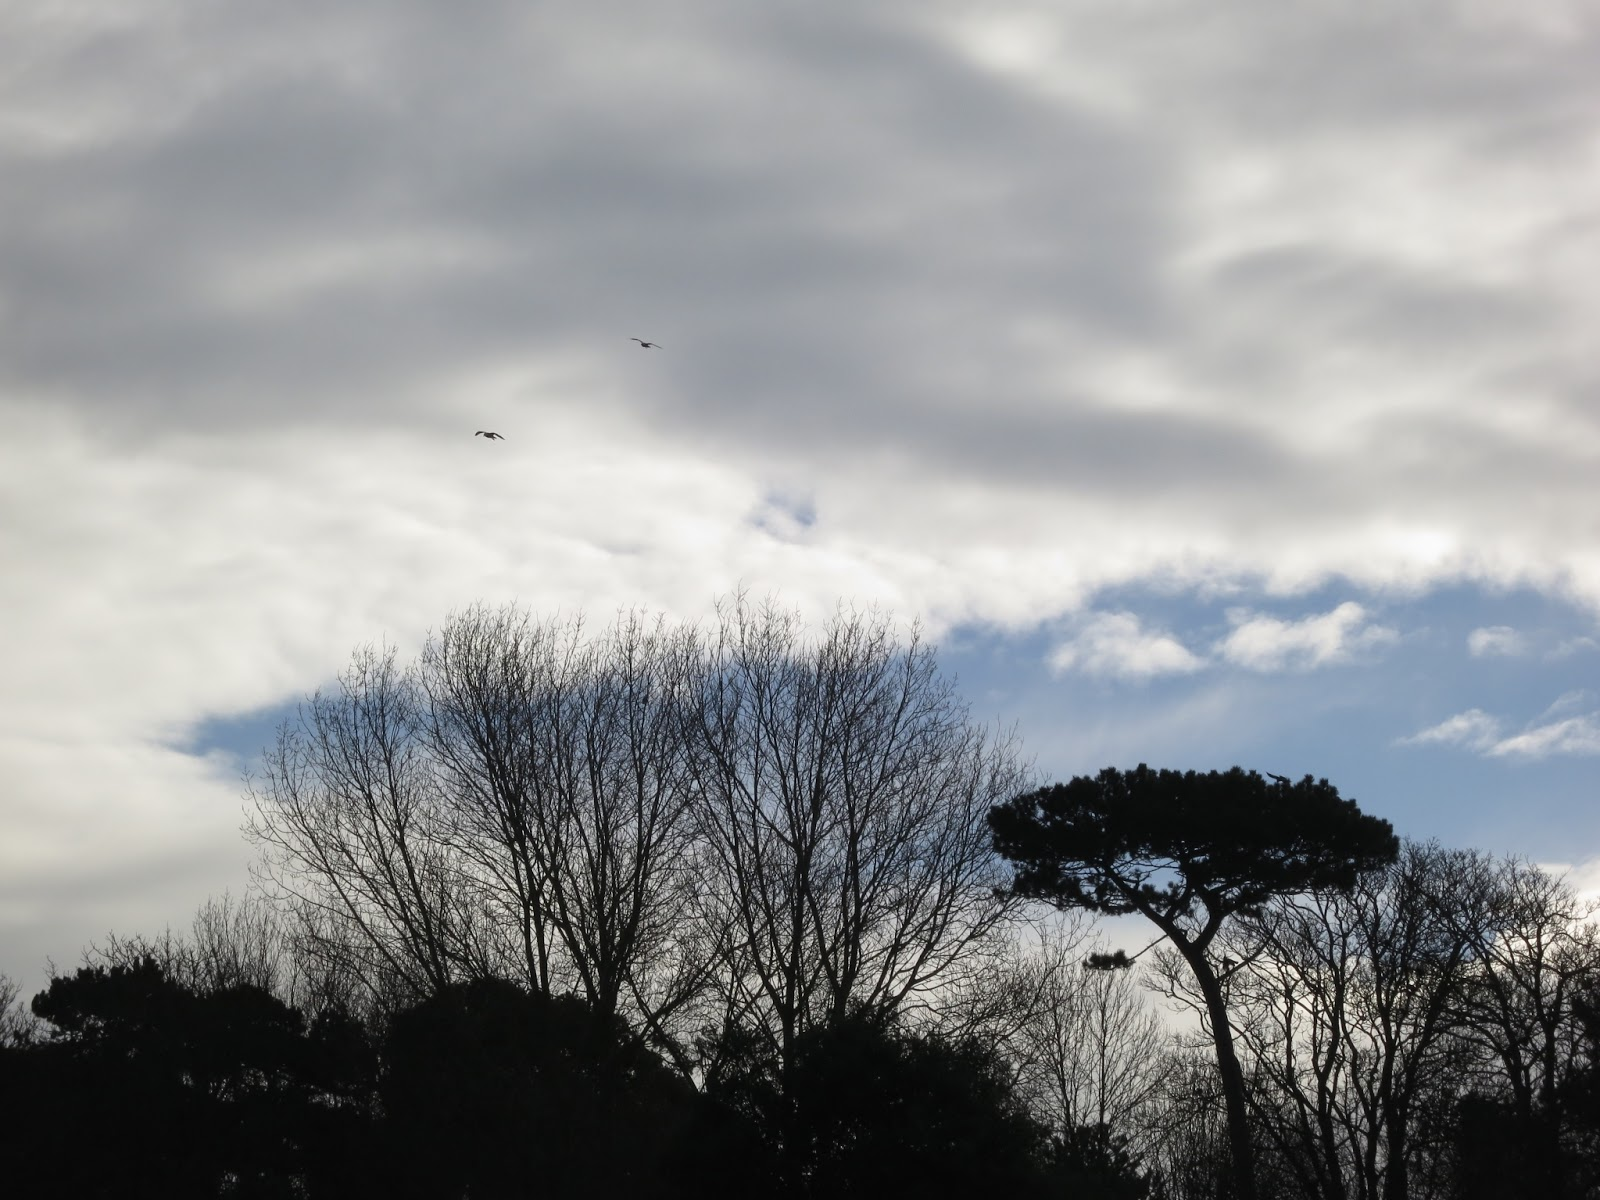 Birds fly over a variety of trees against a winter sky.